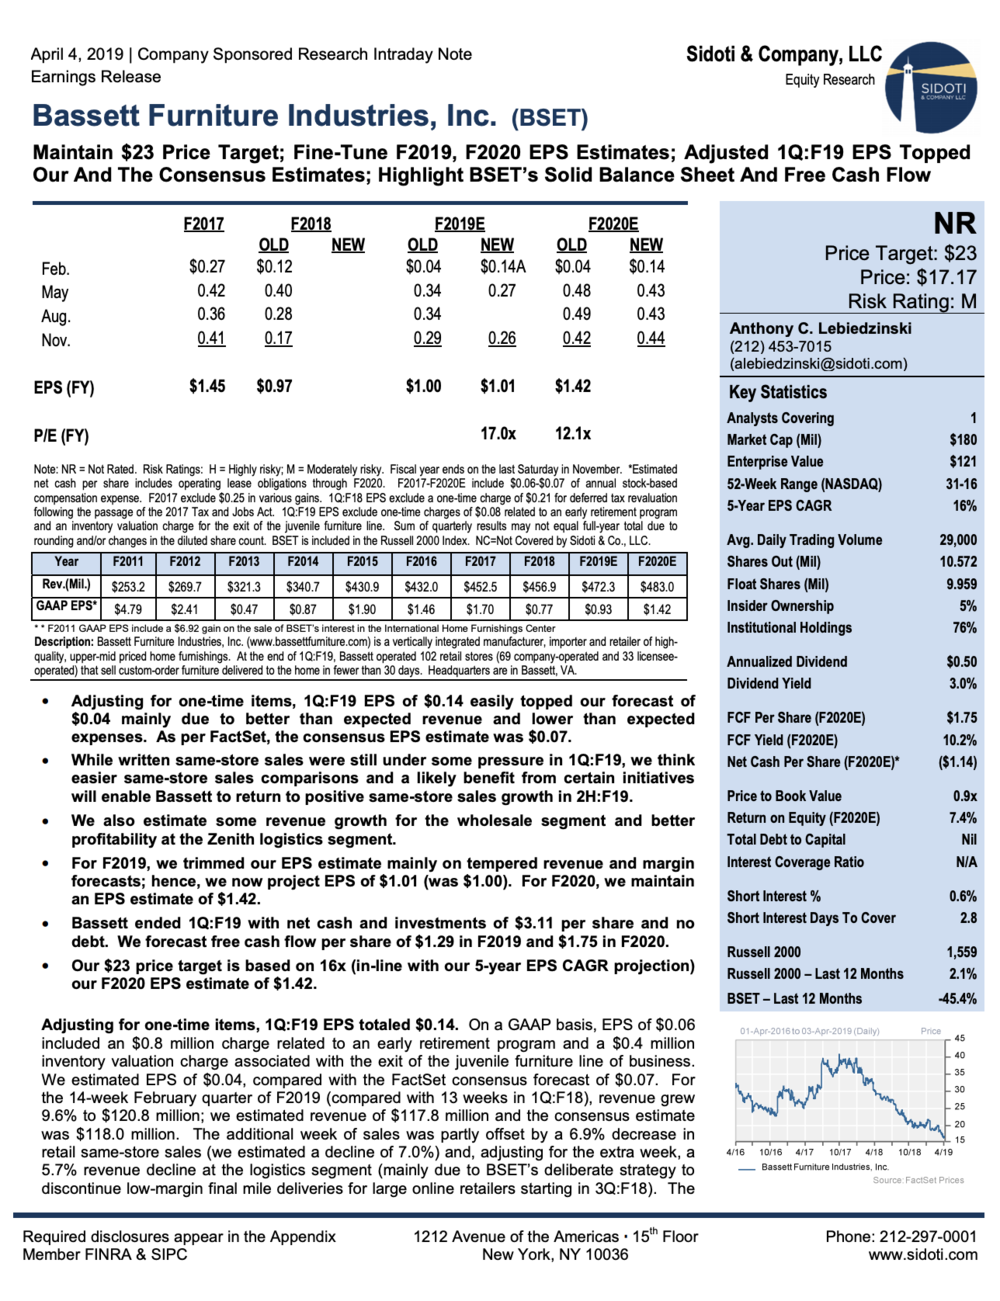 Earnings Release:  April  4, 2019